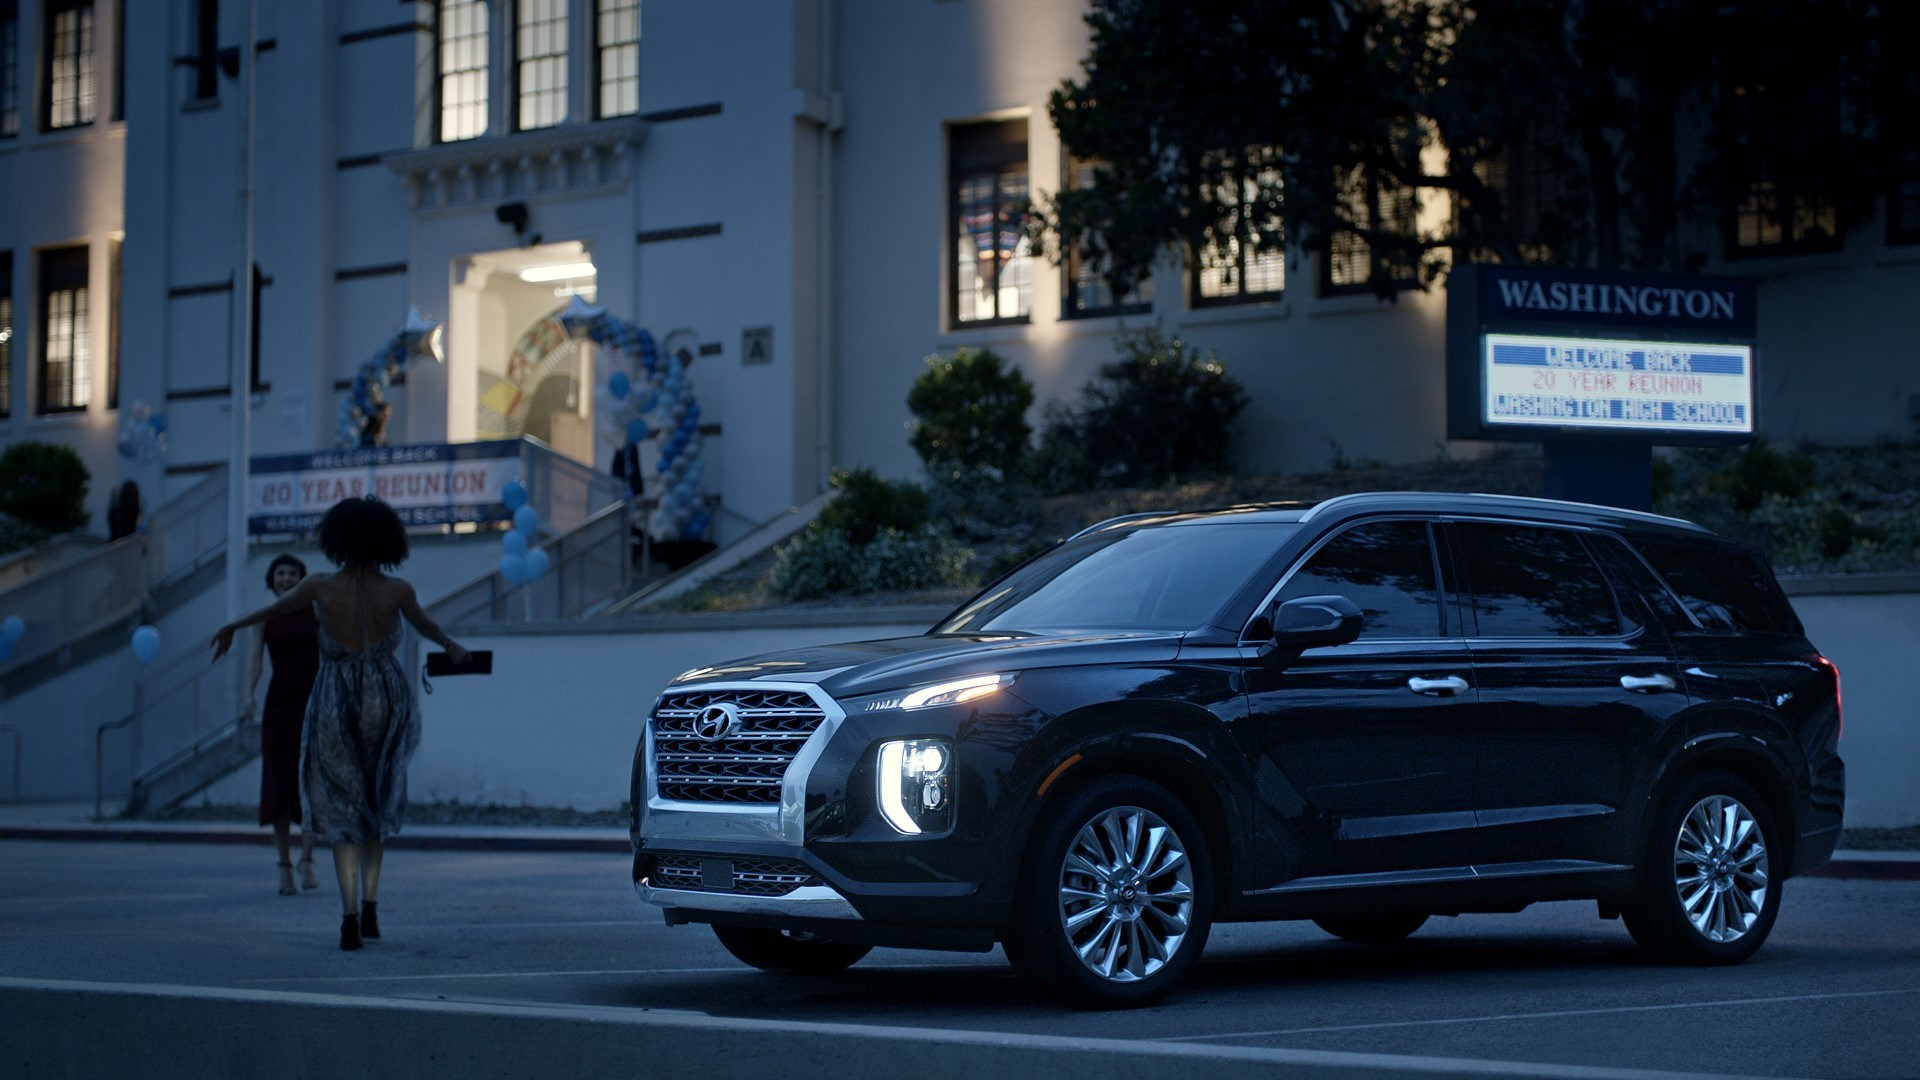 Hyundai's National Marketing Campaign Shows How the 2020